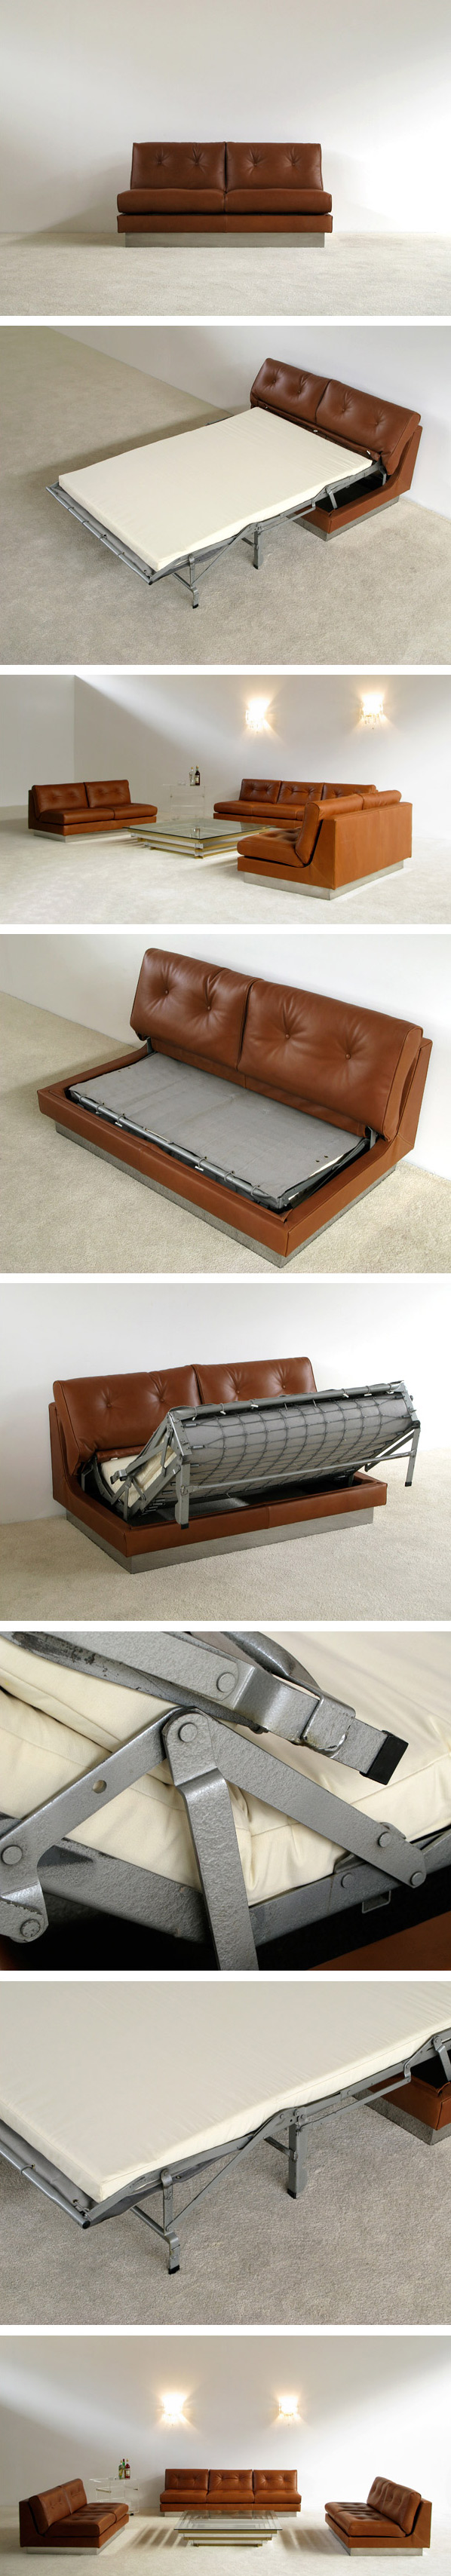 Cognac leather 2 seater sofa bed Pierre Folie Charpentier Large